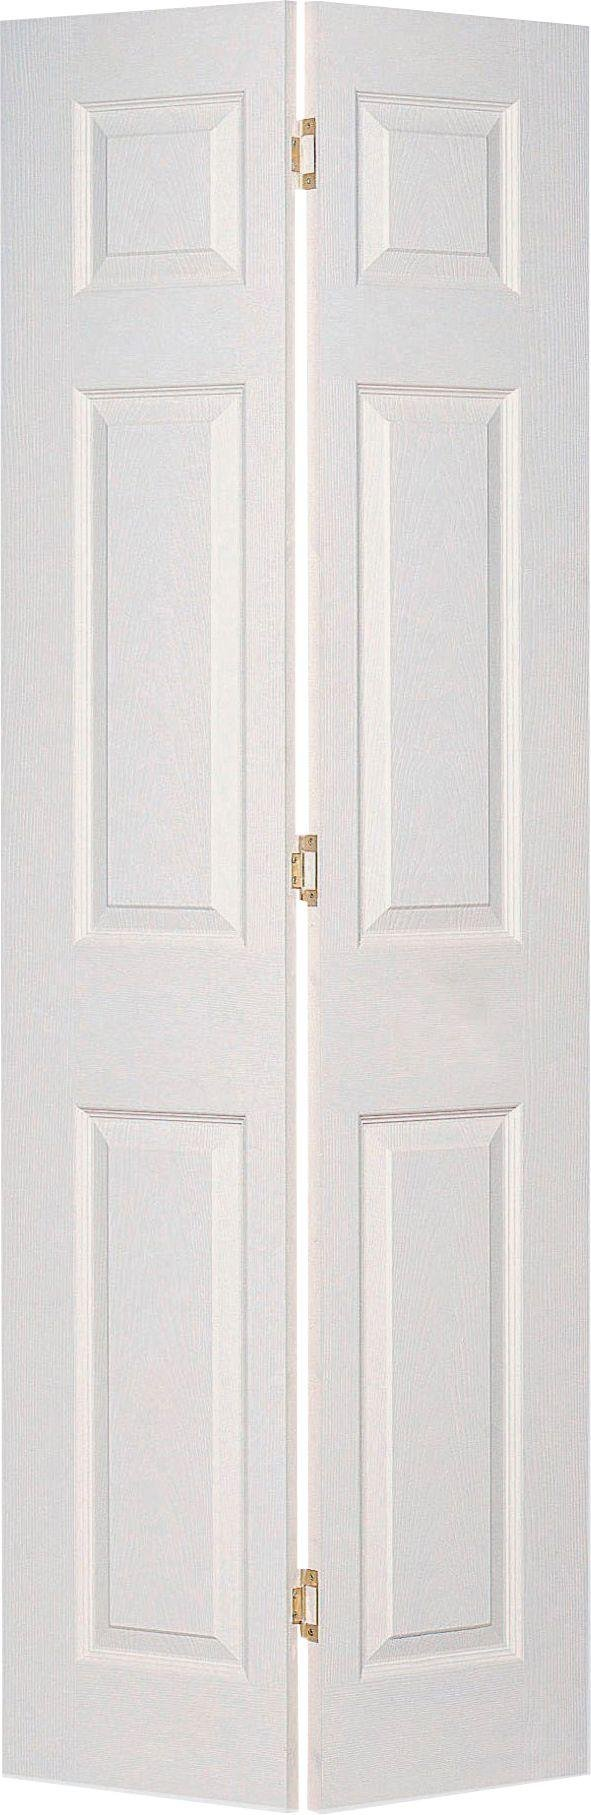 jeld-wen-6-panel-bi-fold-interior-door-1981-x-610mm